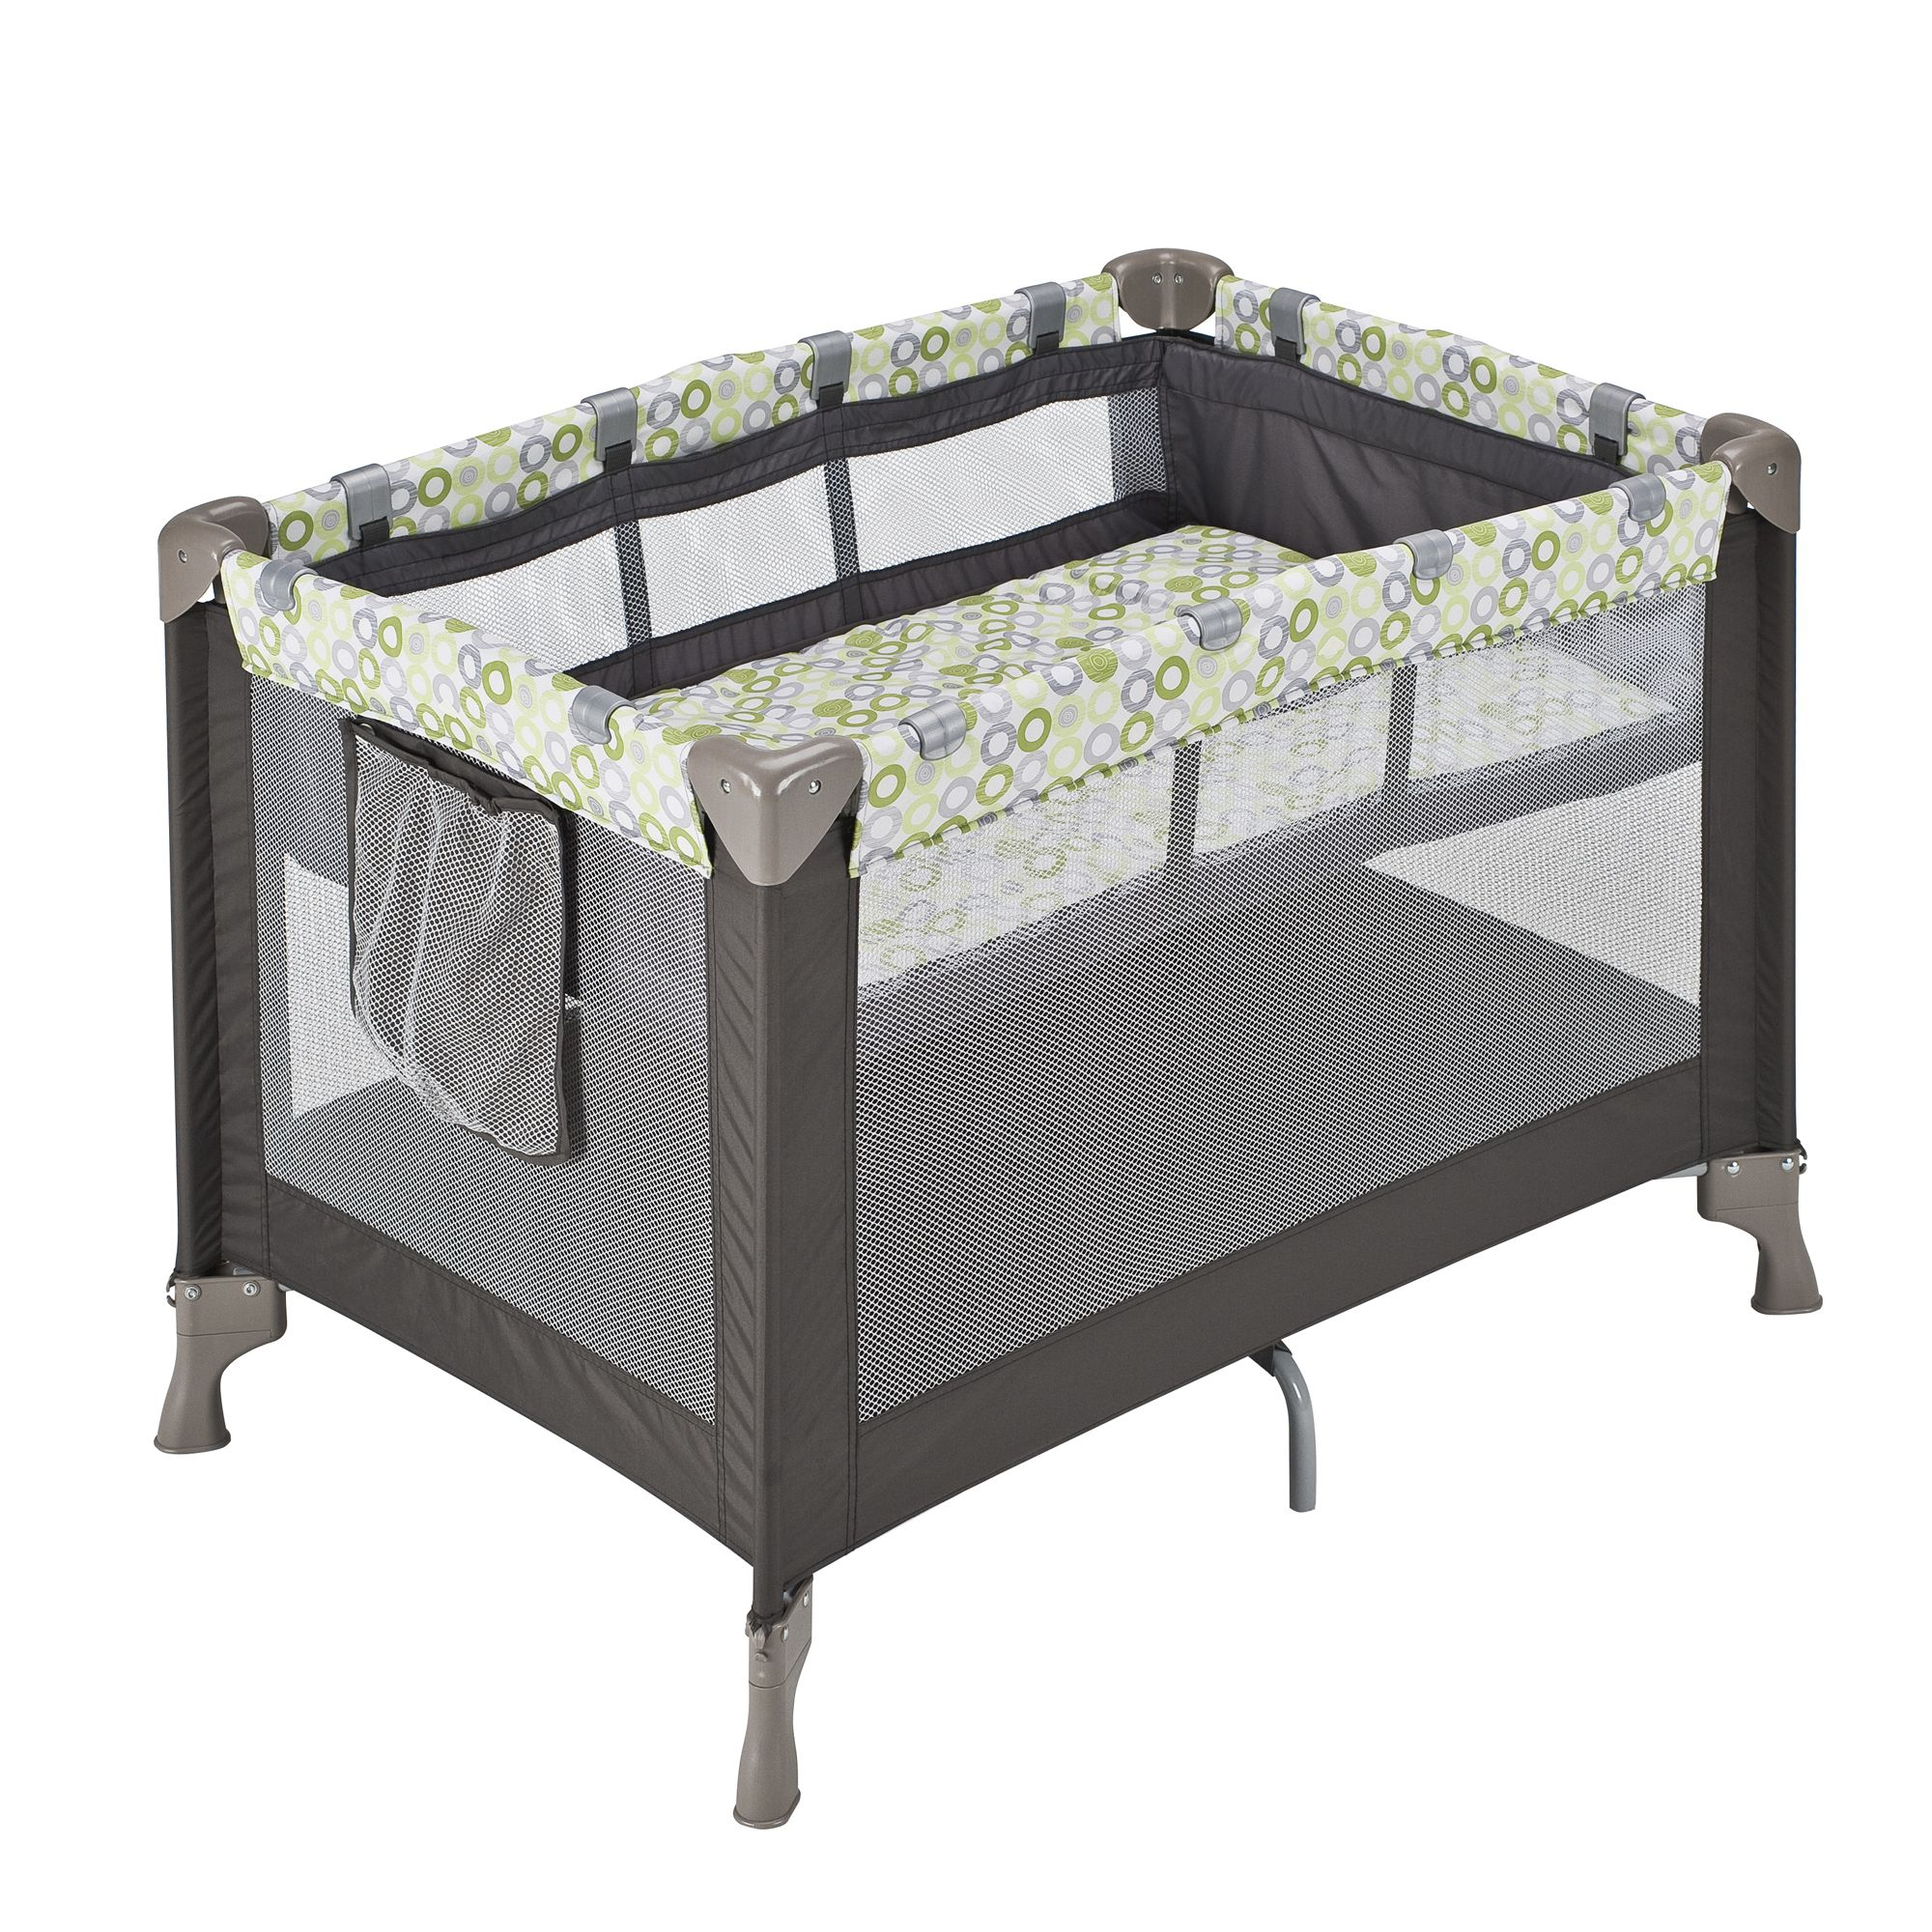 Playpen Baby Playing Evenflo Babysuite Classic Playard Mesa Green